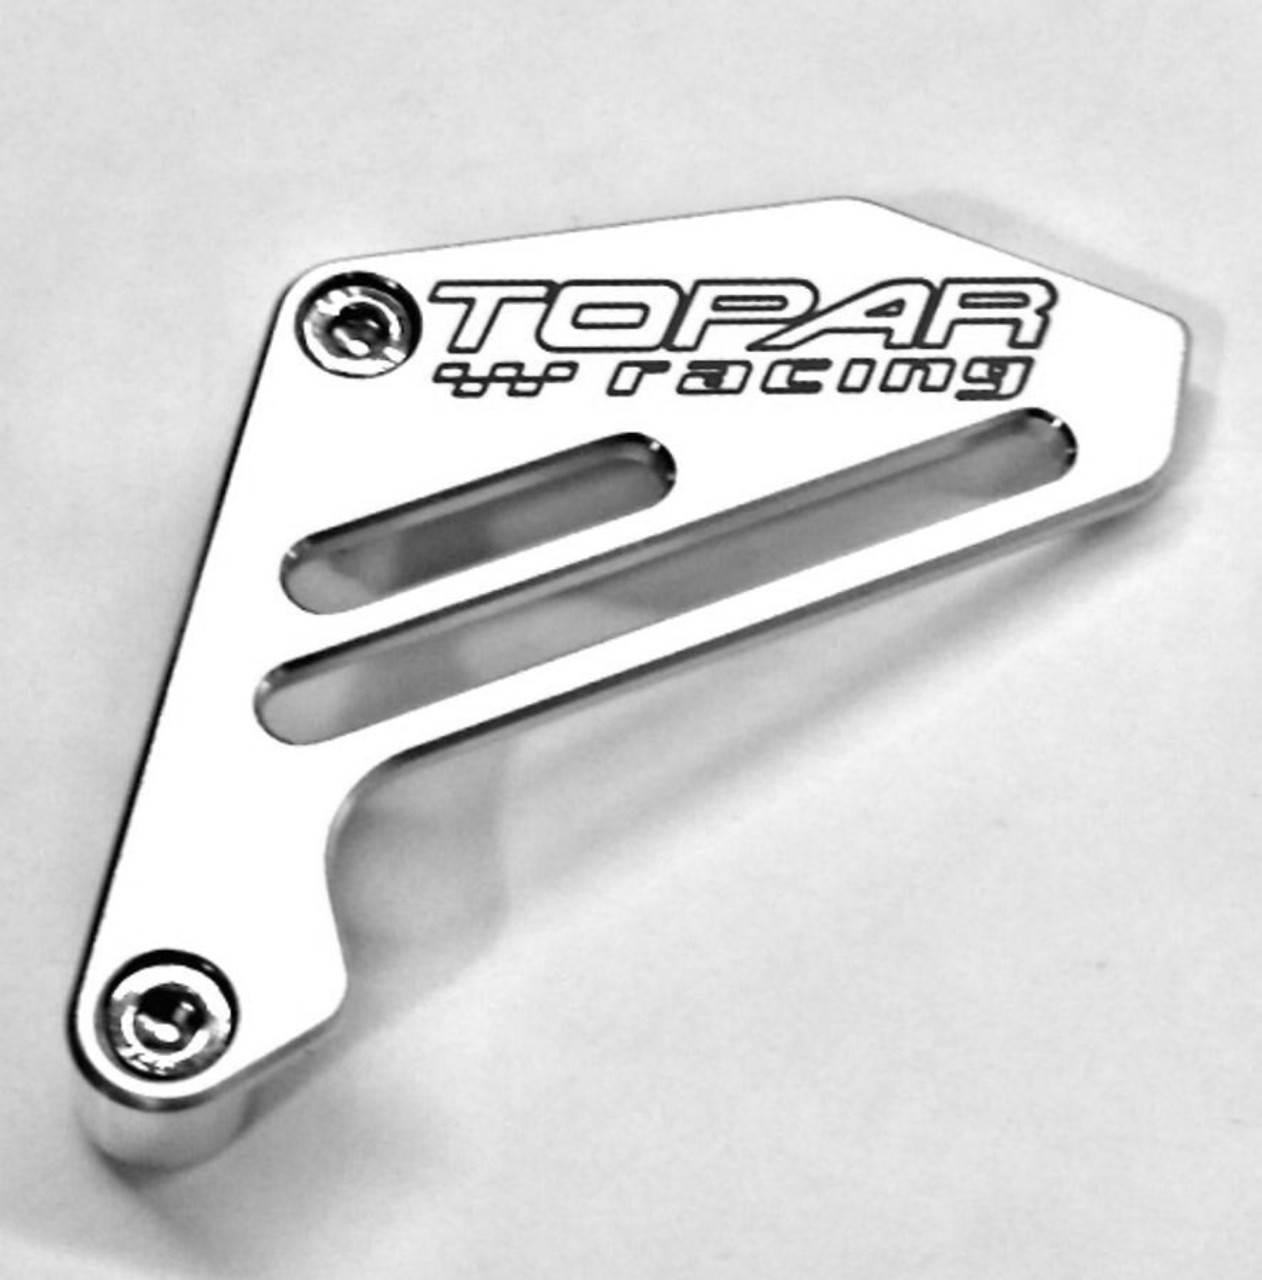 Honda Case Saver-Countershaft Guard for 1996-2007 CR125R by TOPAR RACING